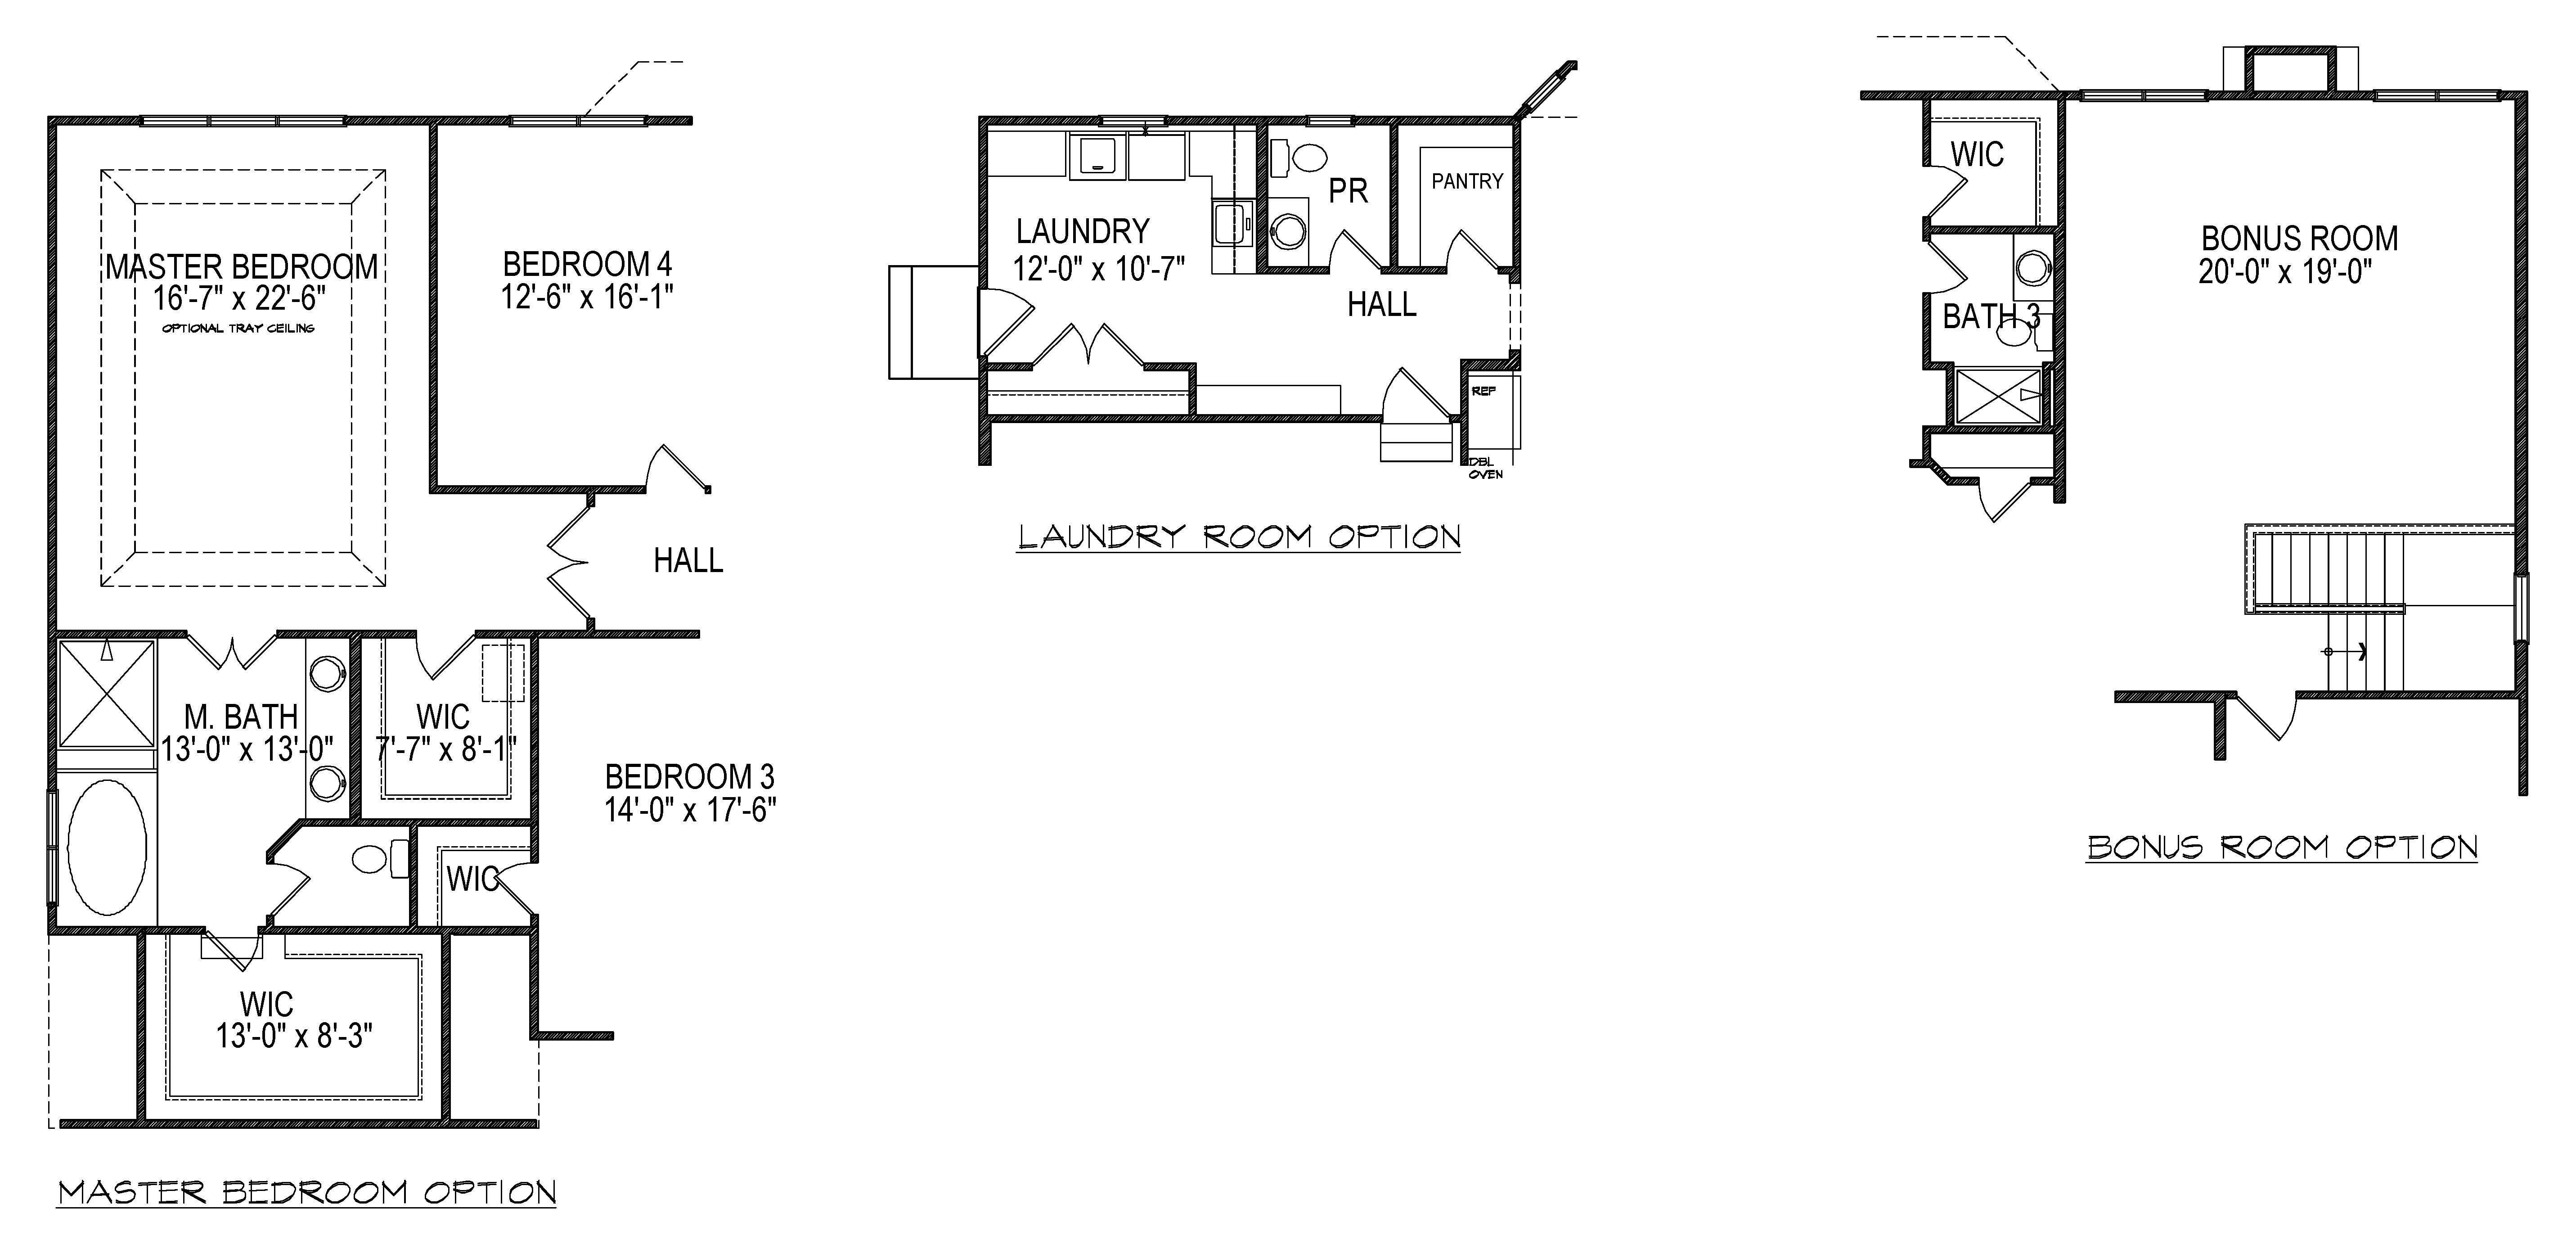 Get Inspirations Design A Laundry Room Layout With Cool Mud Room Schematic On White Paper Layout Simple Design Laundry Room Layouts Room Layout Mudroom Design